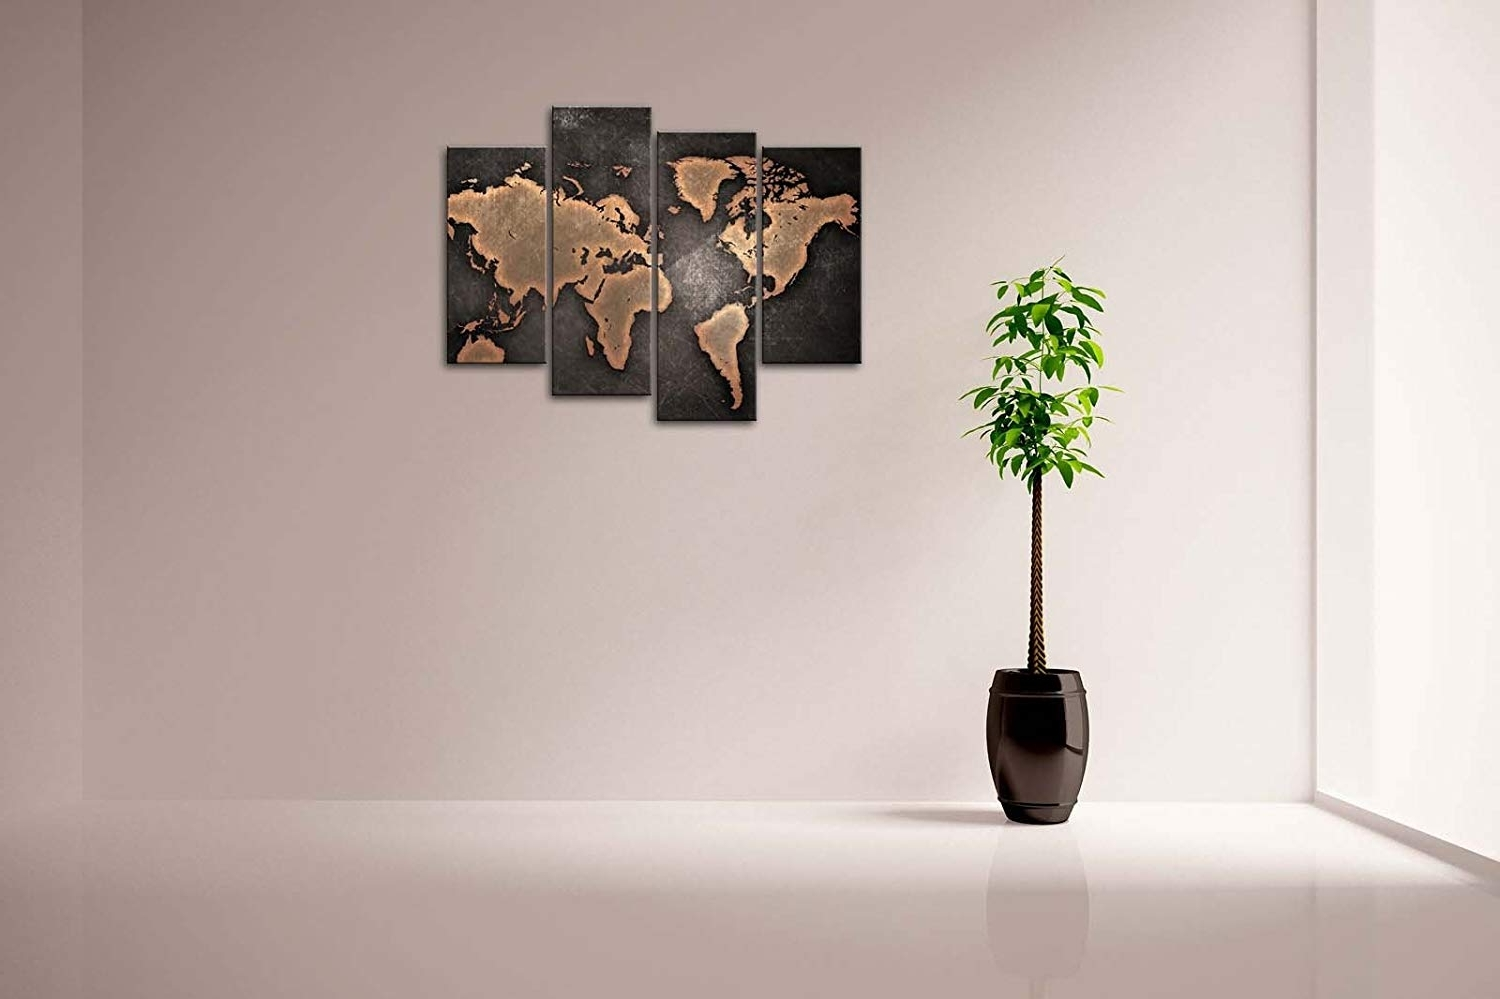 Best And Newest Modern Wall Art With Regard To Amazon: Firstwallart General World Map Black Background Wall Art (View 2 of 15)